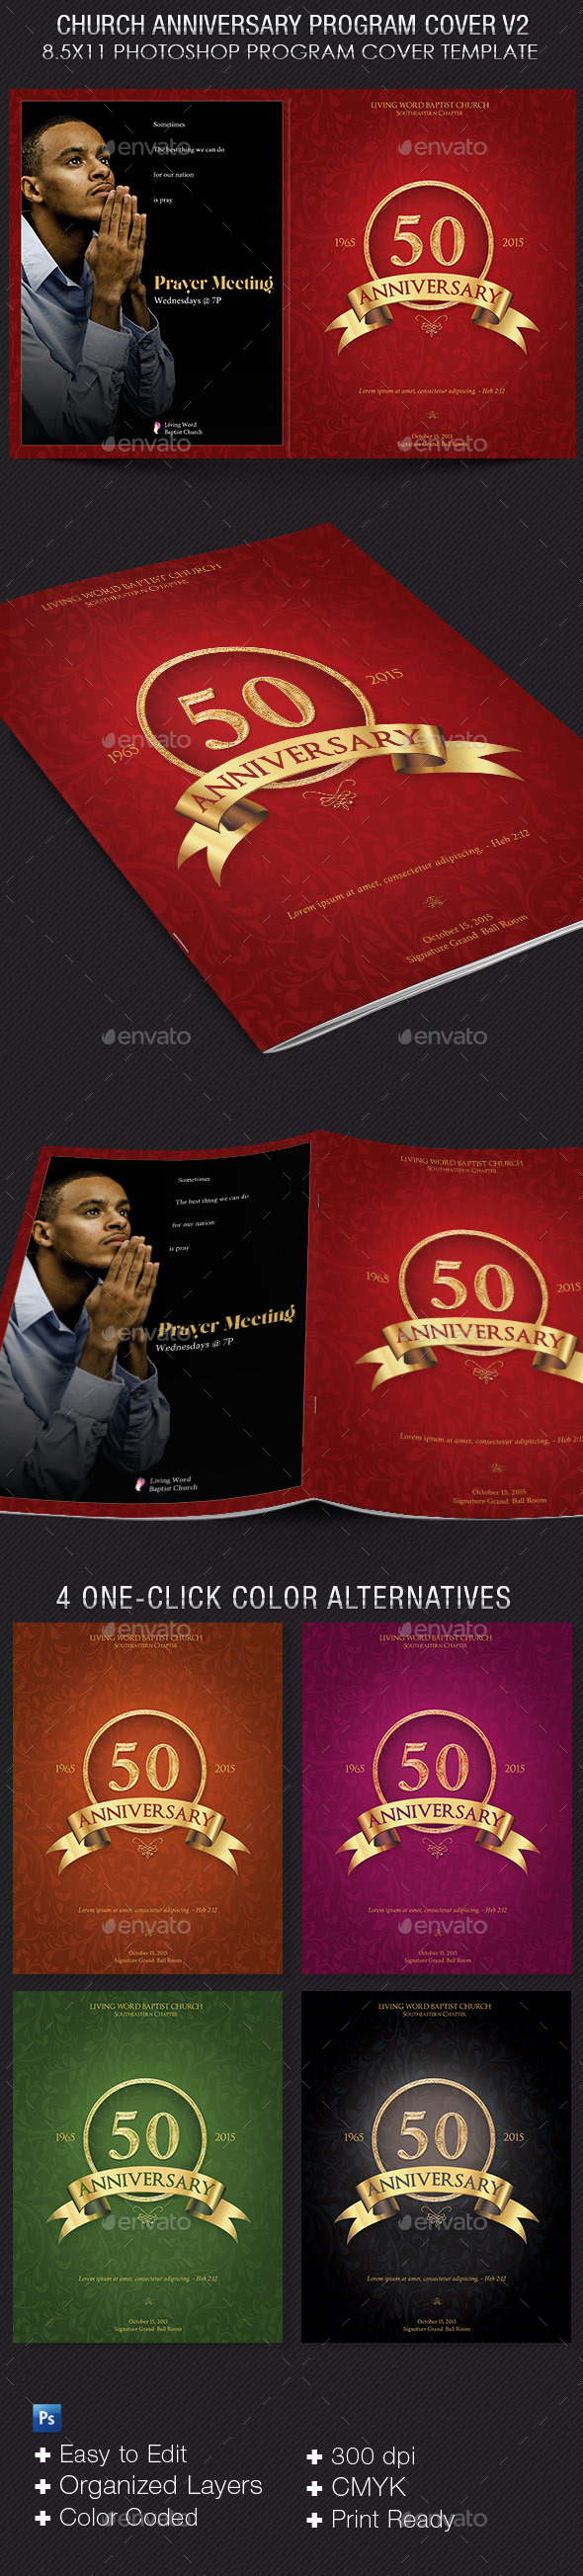 Church Anniversary Program Cover Template V2 - Magazines Print Templates